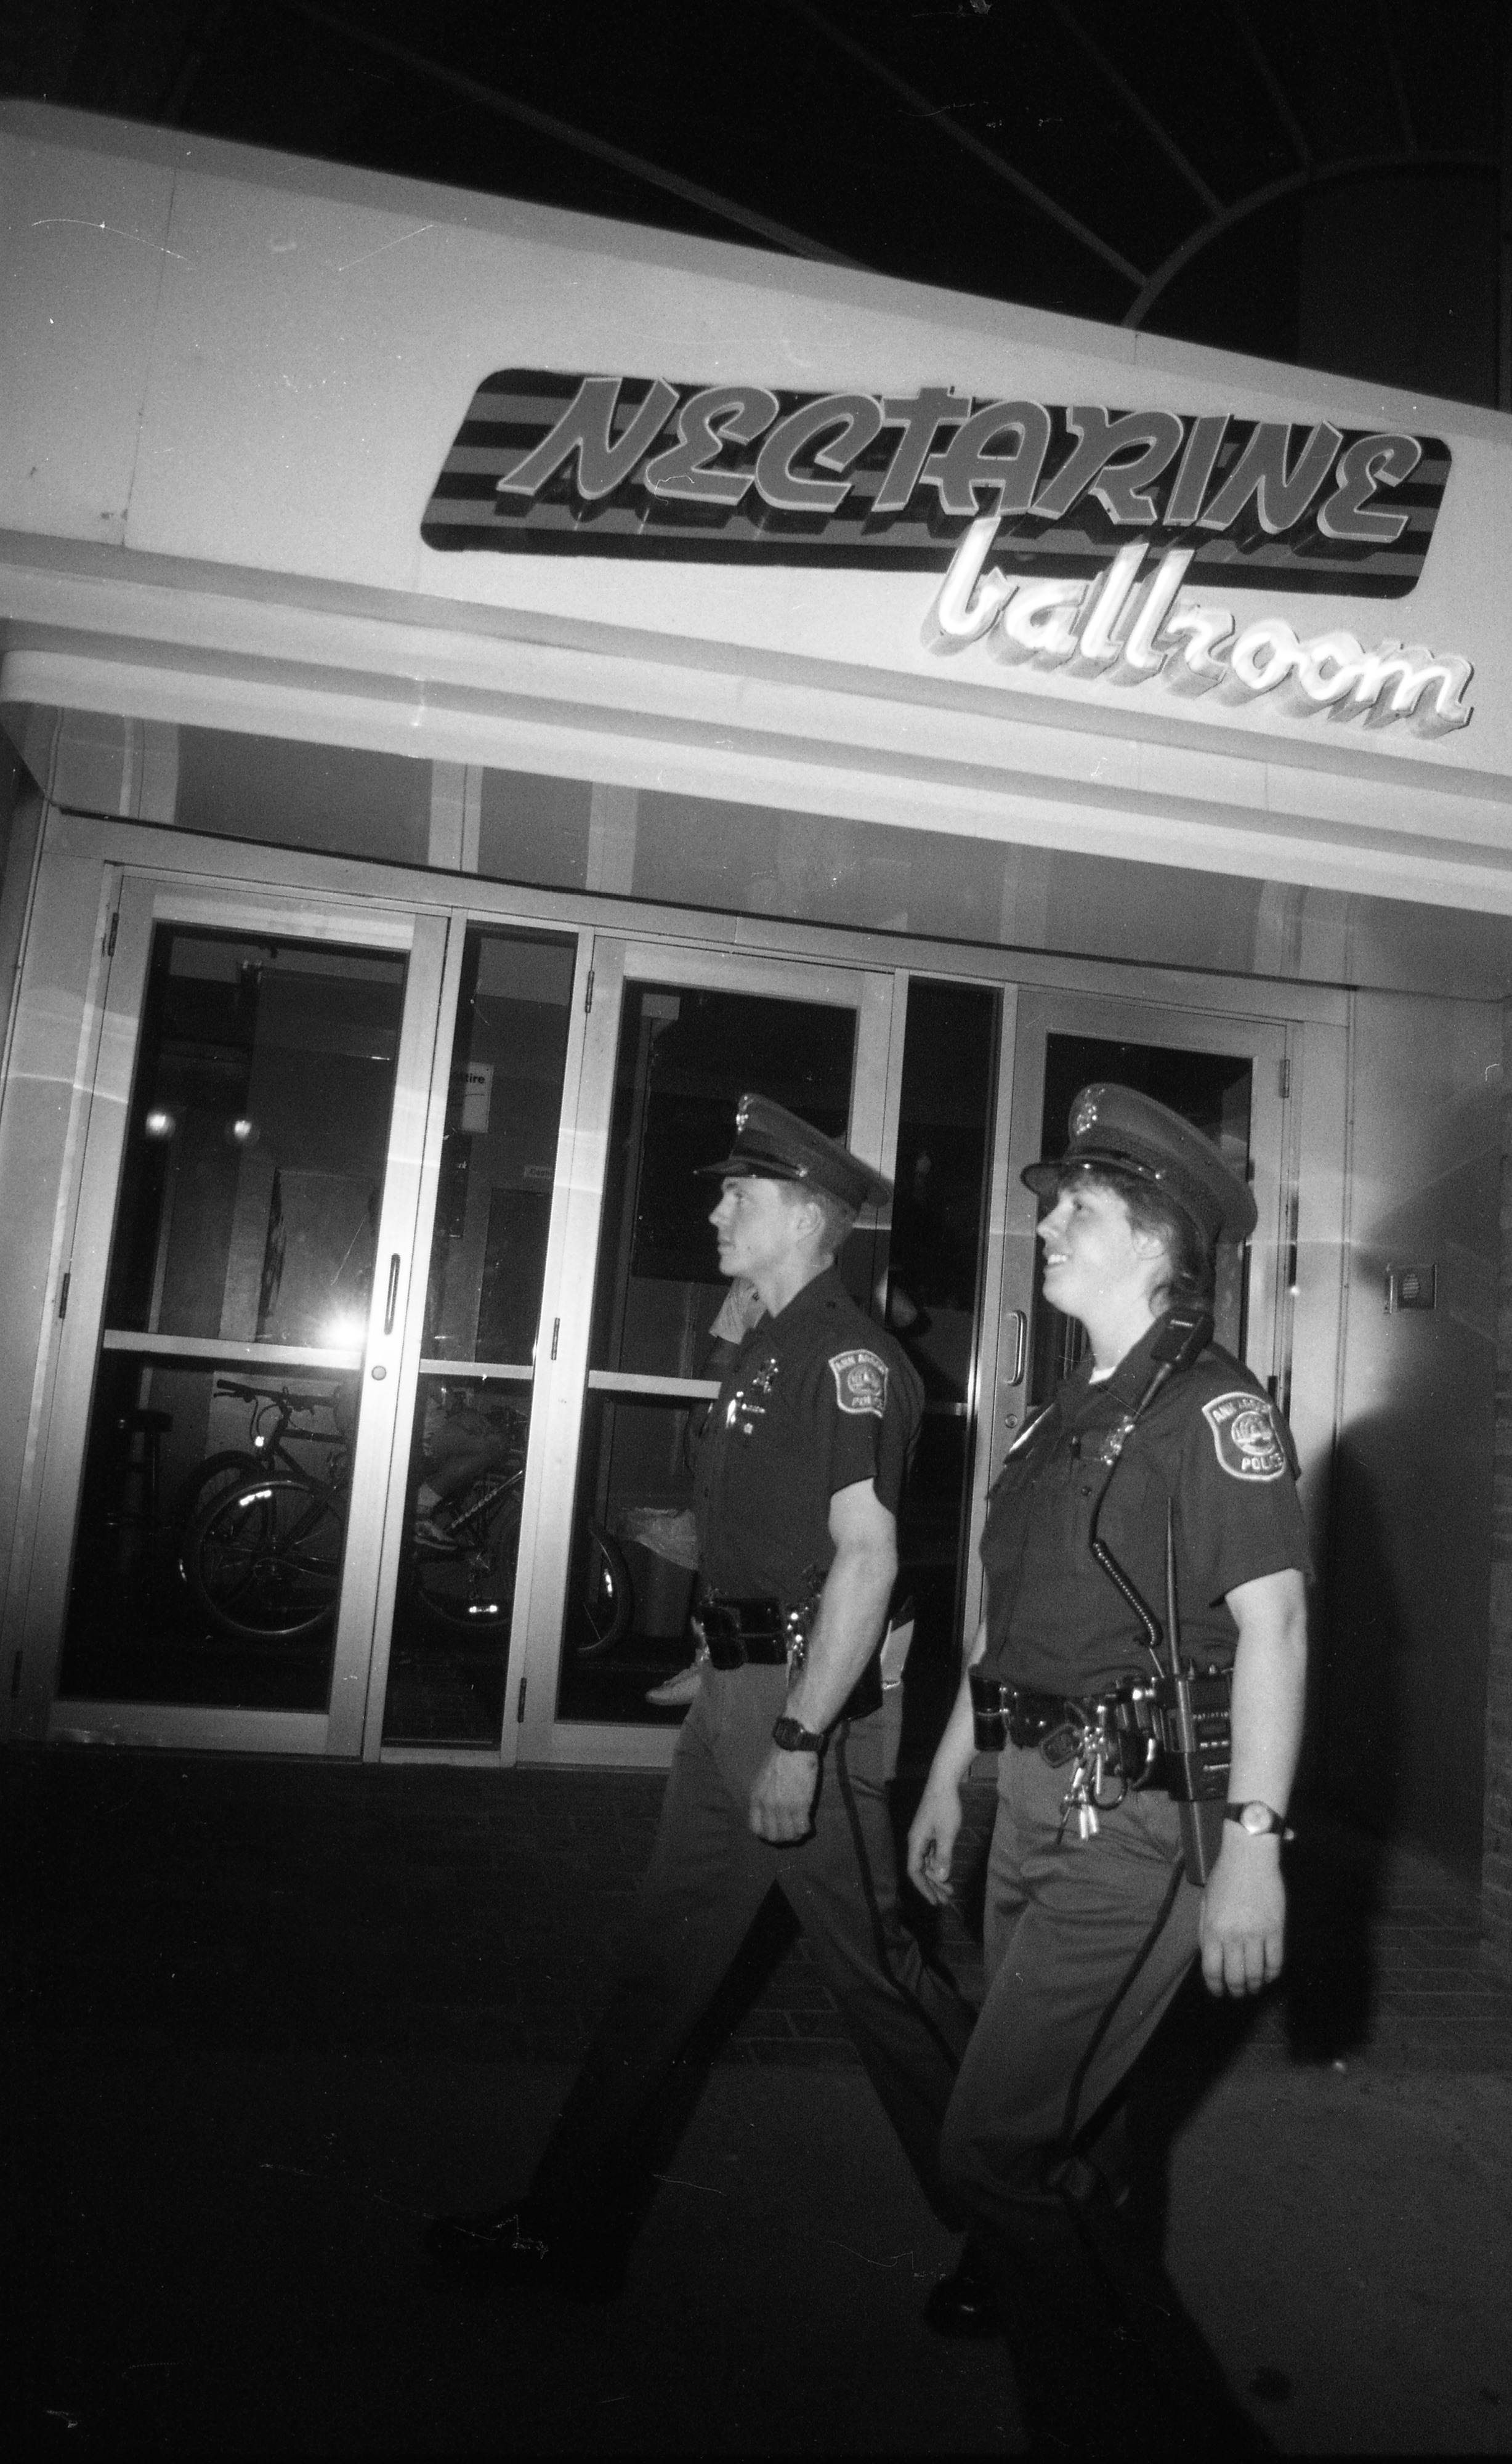 Ann Arbor Police Department Special Problems Unit Outside Nectarine Ballroom, April 1990 image